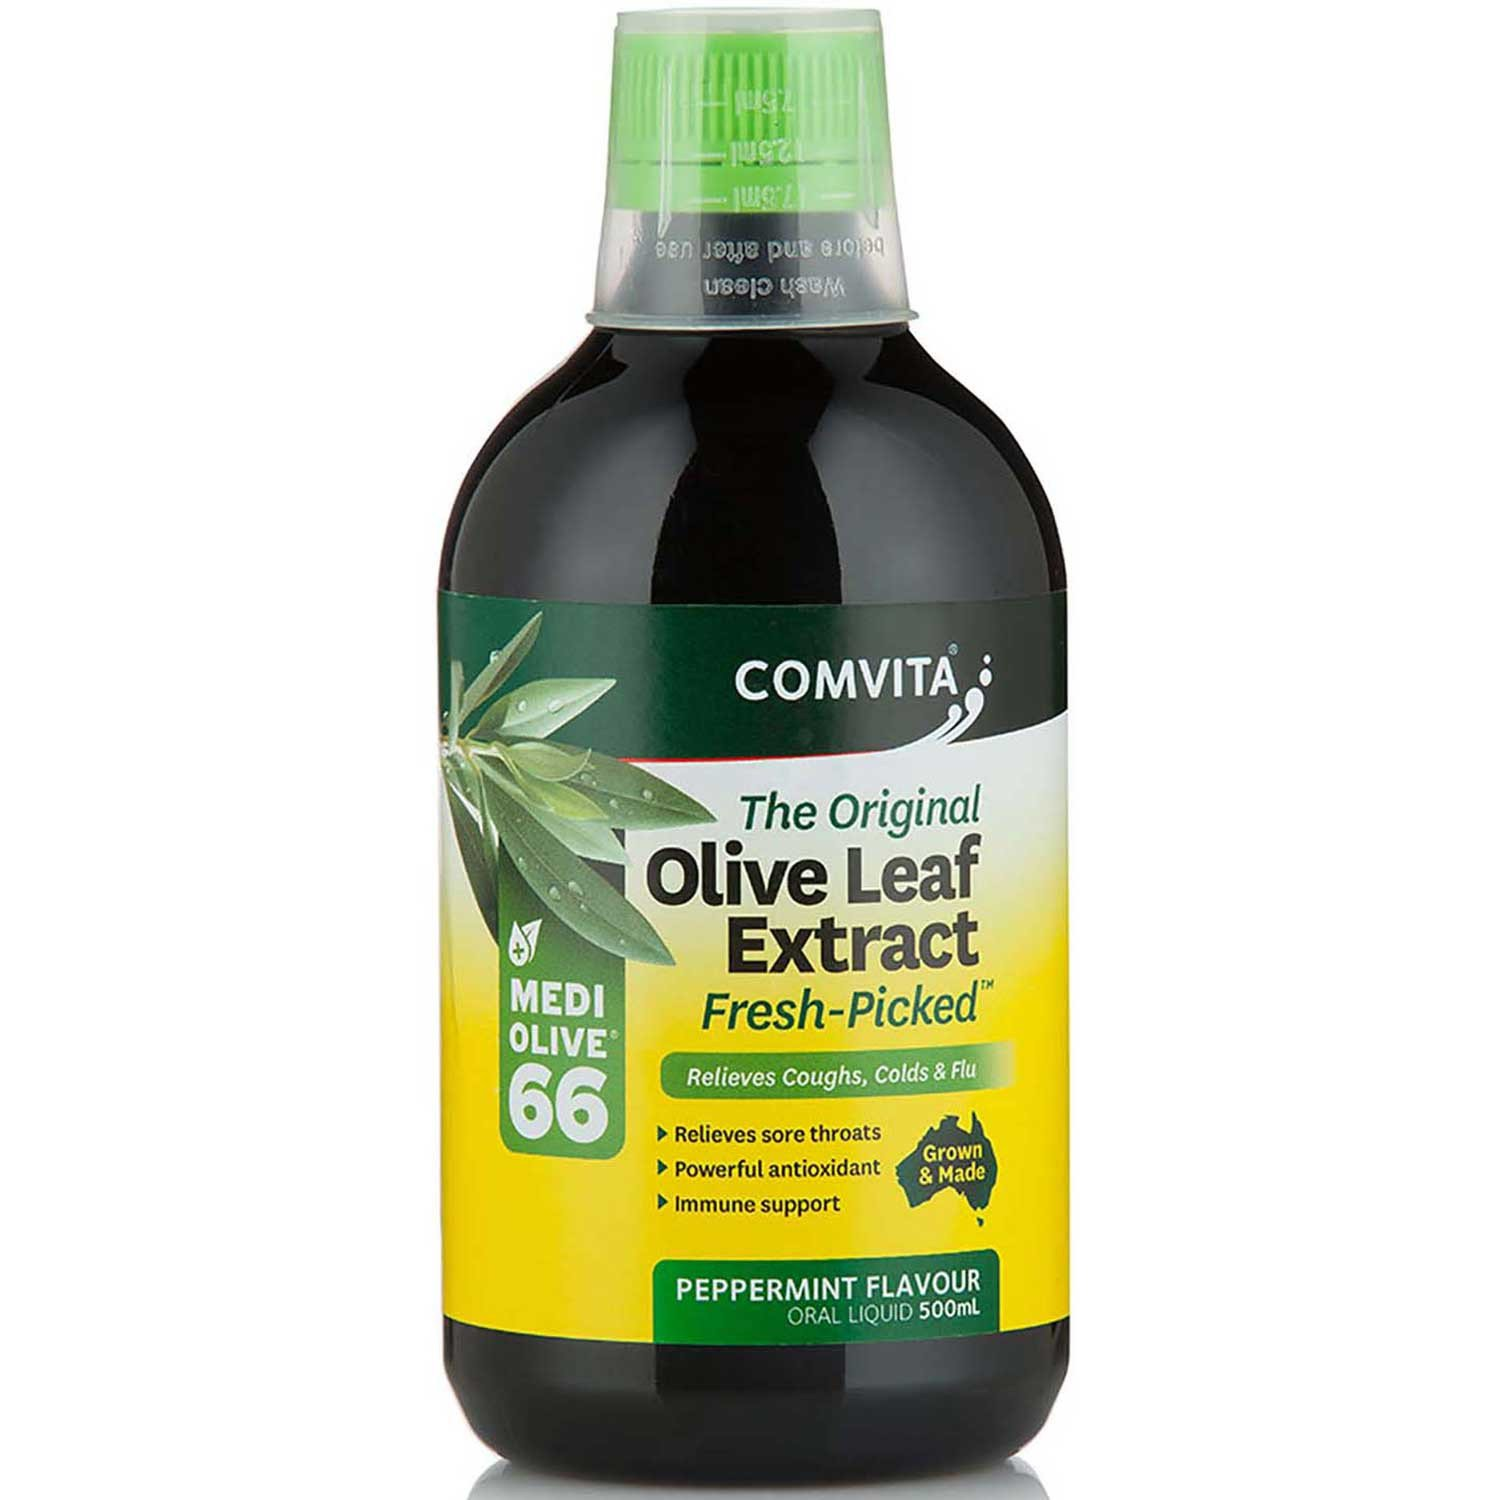 Comvita Olive Leaf Extract - Peppermint Flavor, 500 ml